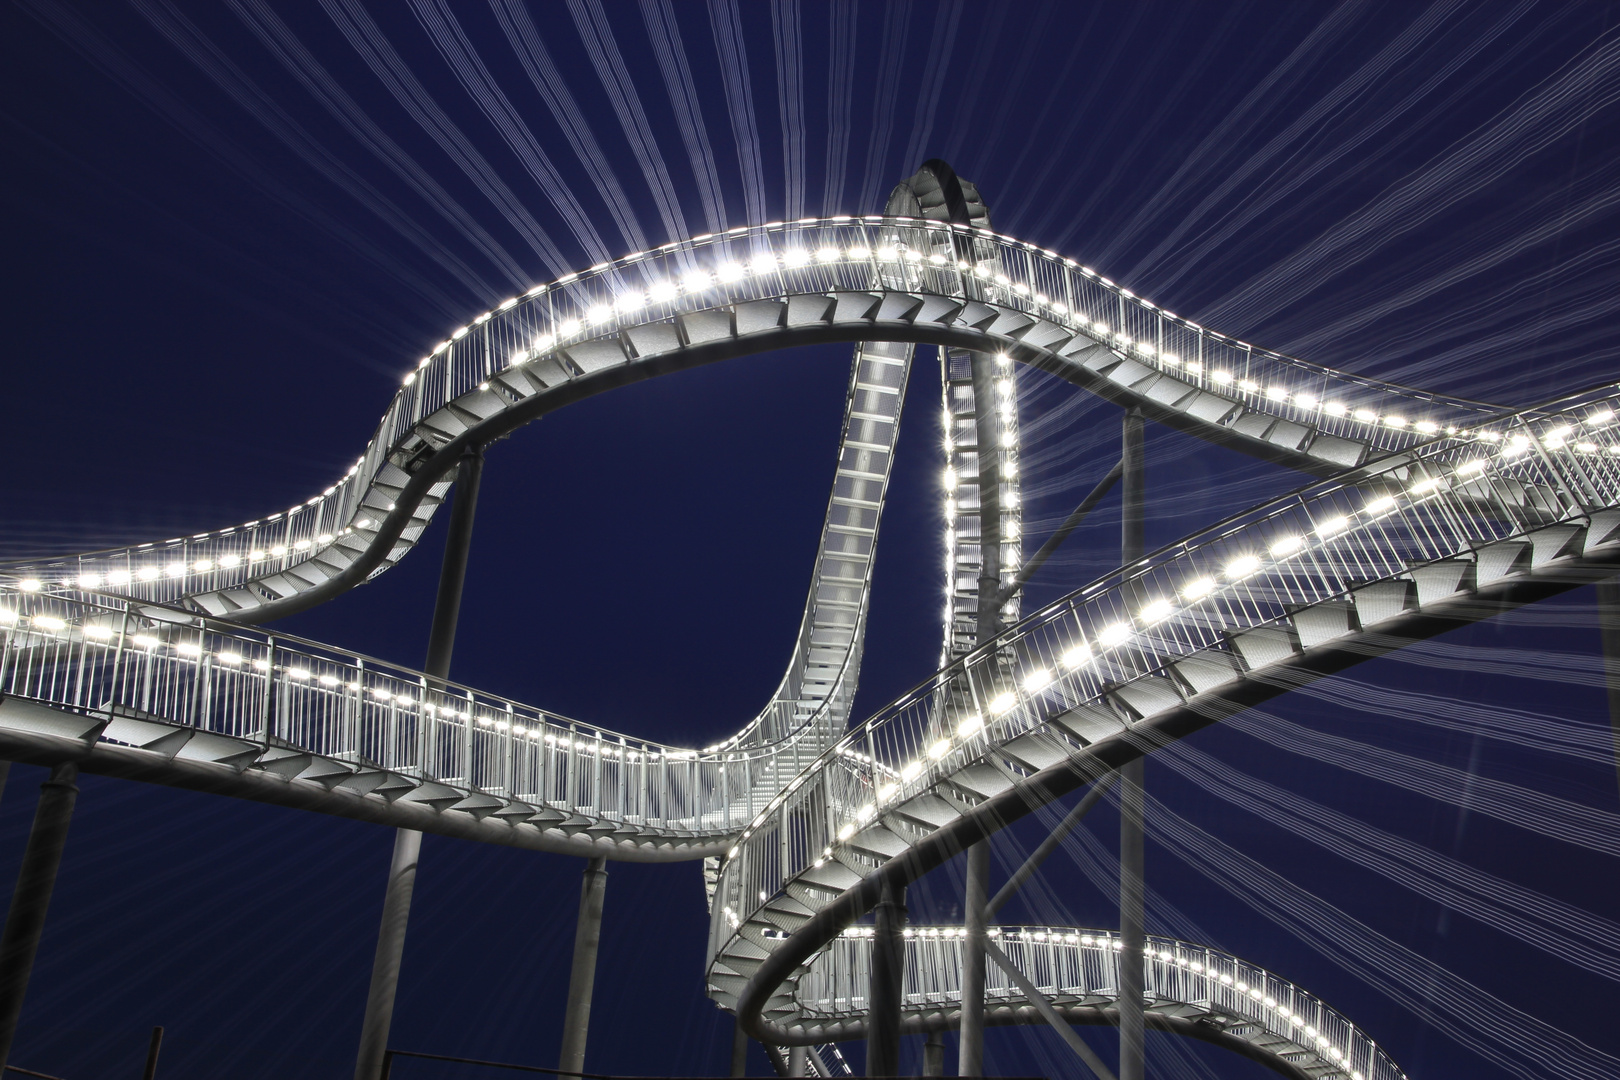 Tiger and Turtle mal anders